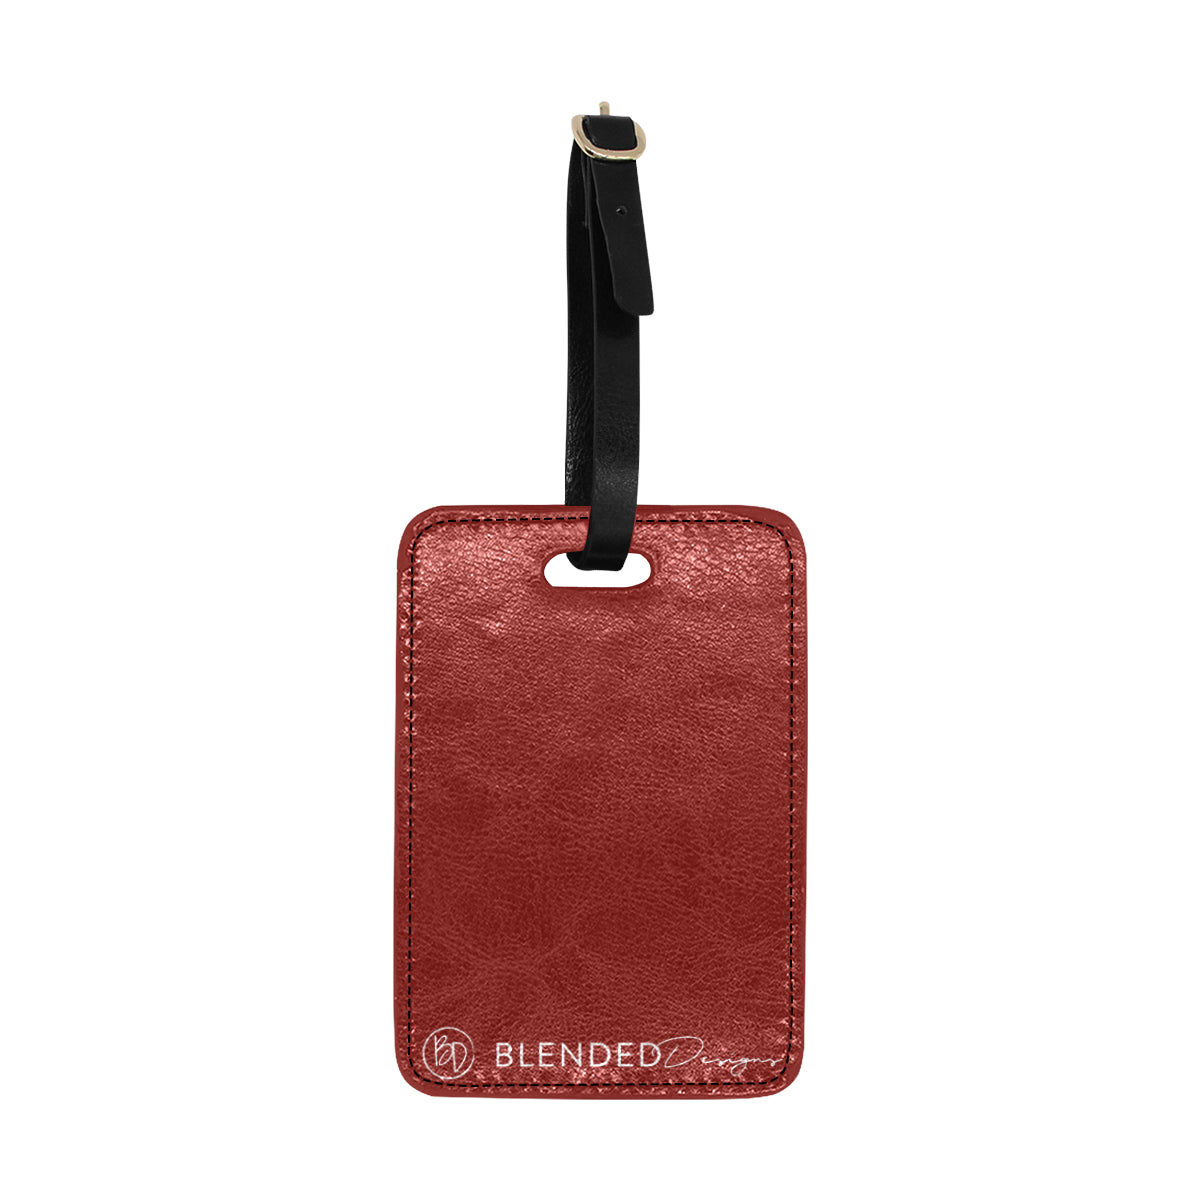 Diamond Inspired Luggage Tag